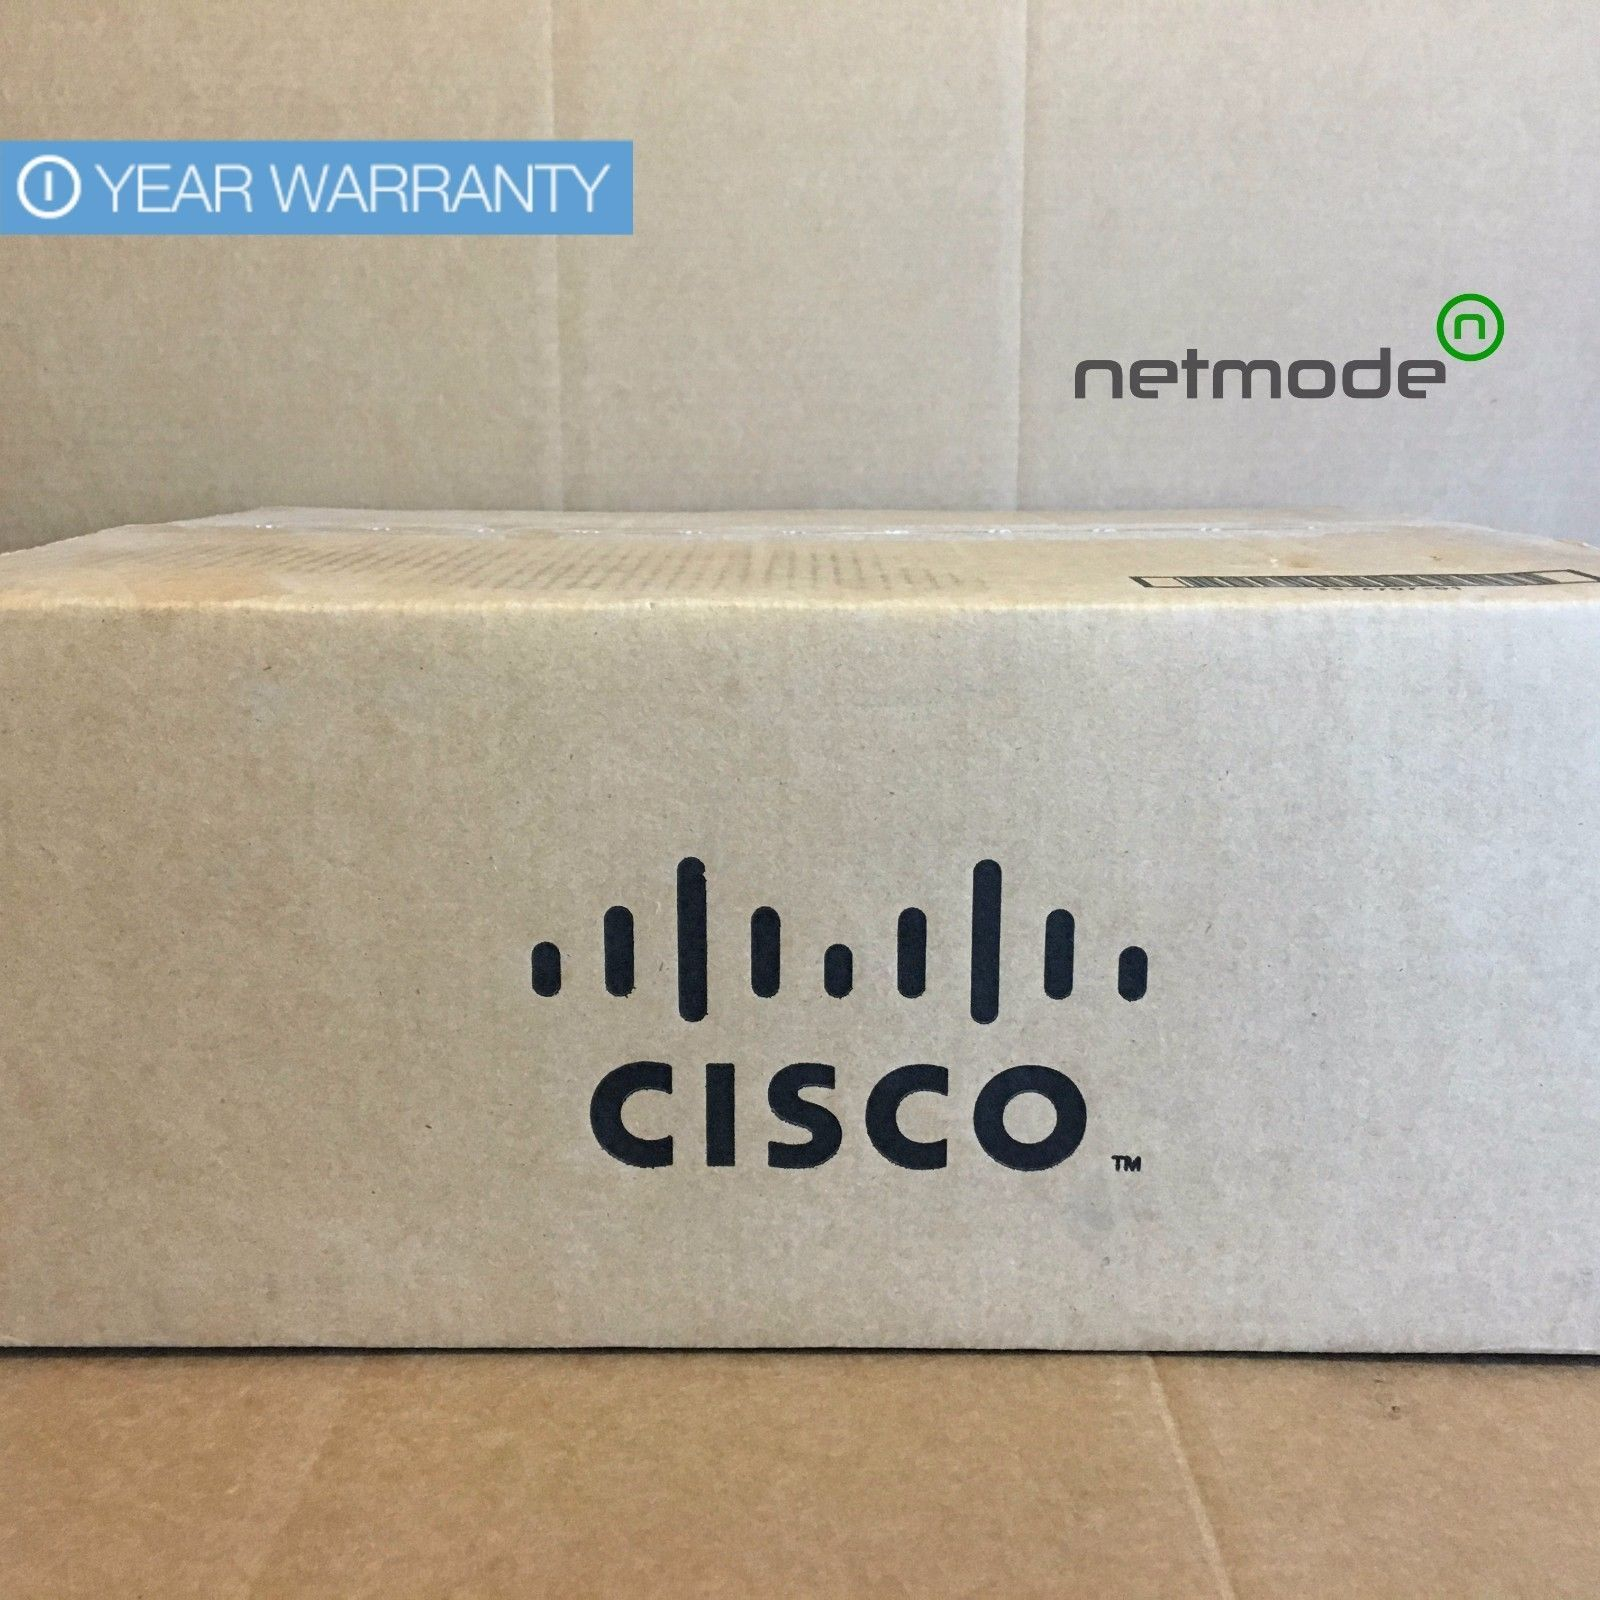 CISCO C9300-48U-E CATALYST 9300 MANAGED L3 SWITCH - 48 ETHERNET PORTS UPOE,  NETWORK ESSENTIALS  NEW FACTORY SEALED C9300-48U-E